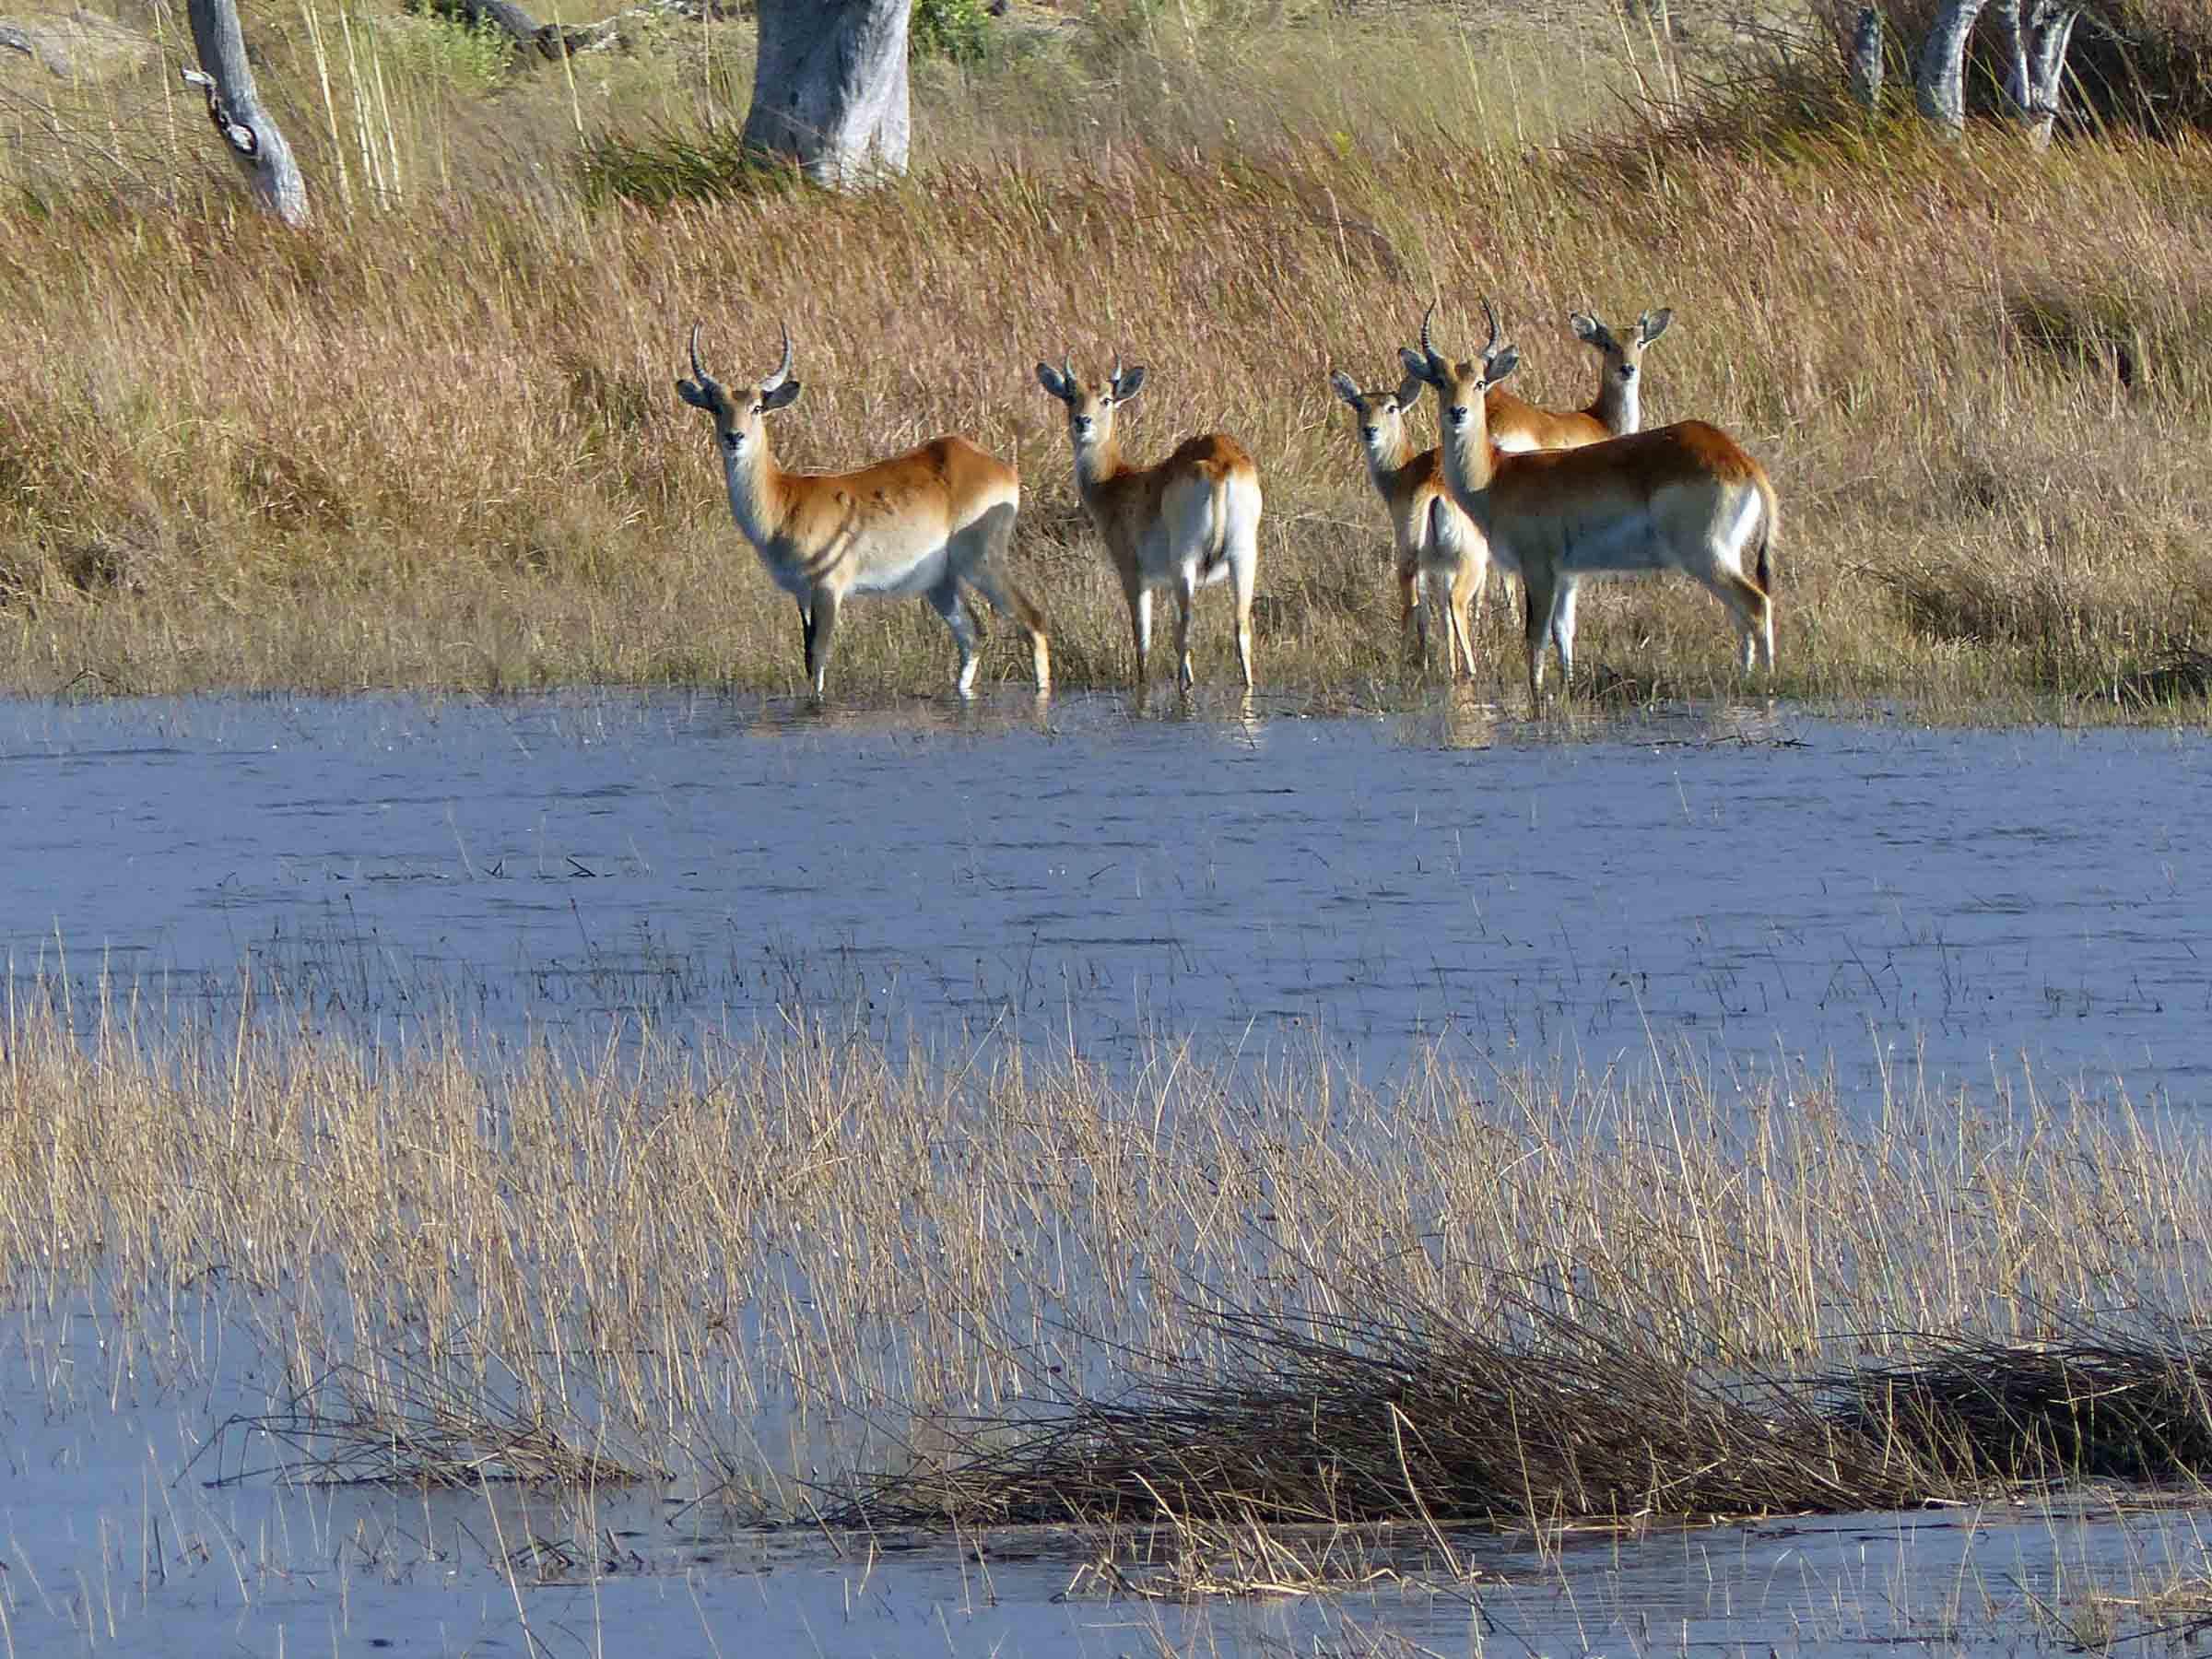 Five deer on far bank of stretch of water